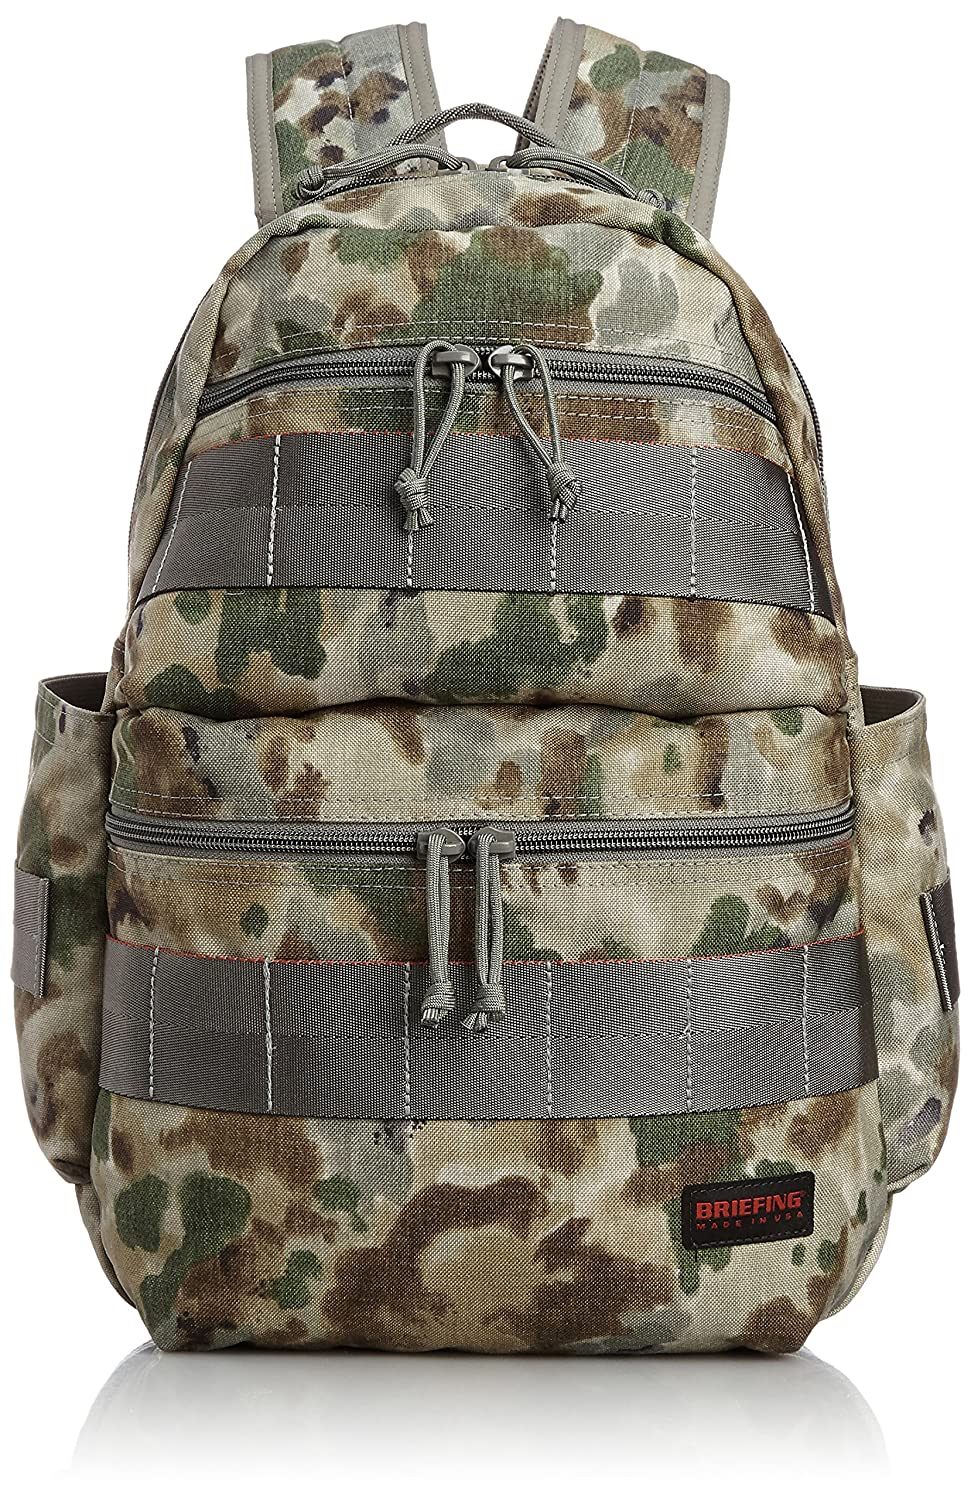 [ブリーフィング] バックパック ATTACK PACK BRF136219 B00M3M524C TRANSITIONAL CAMO TRANSITIONAL CAMO